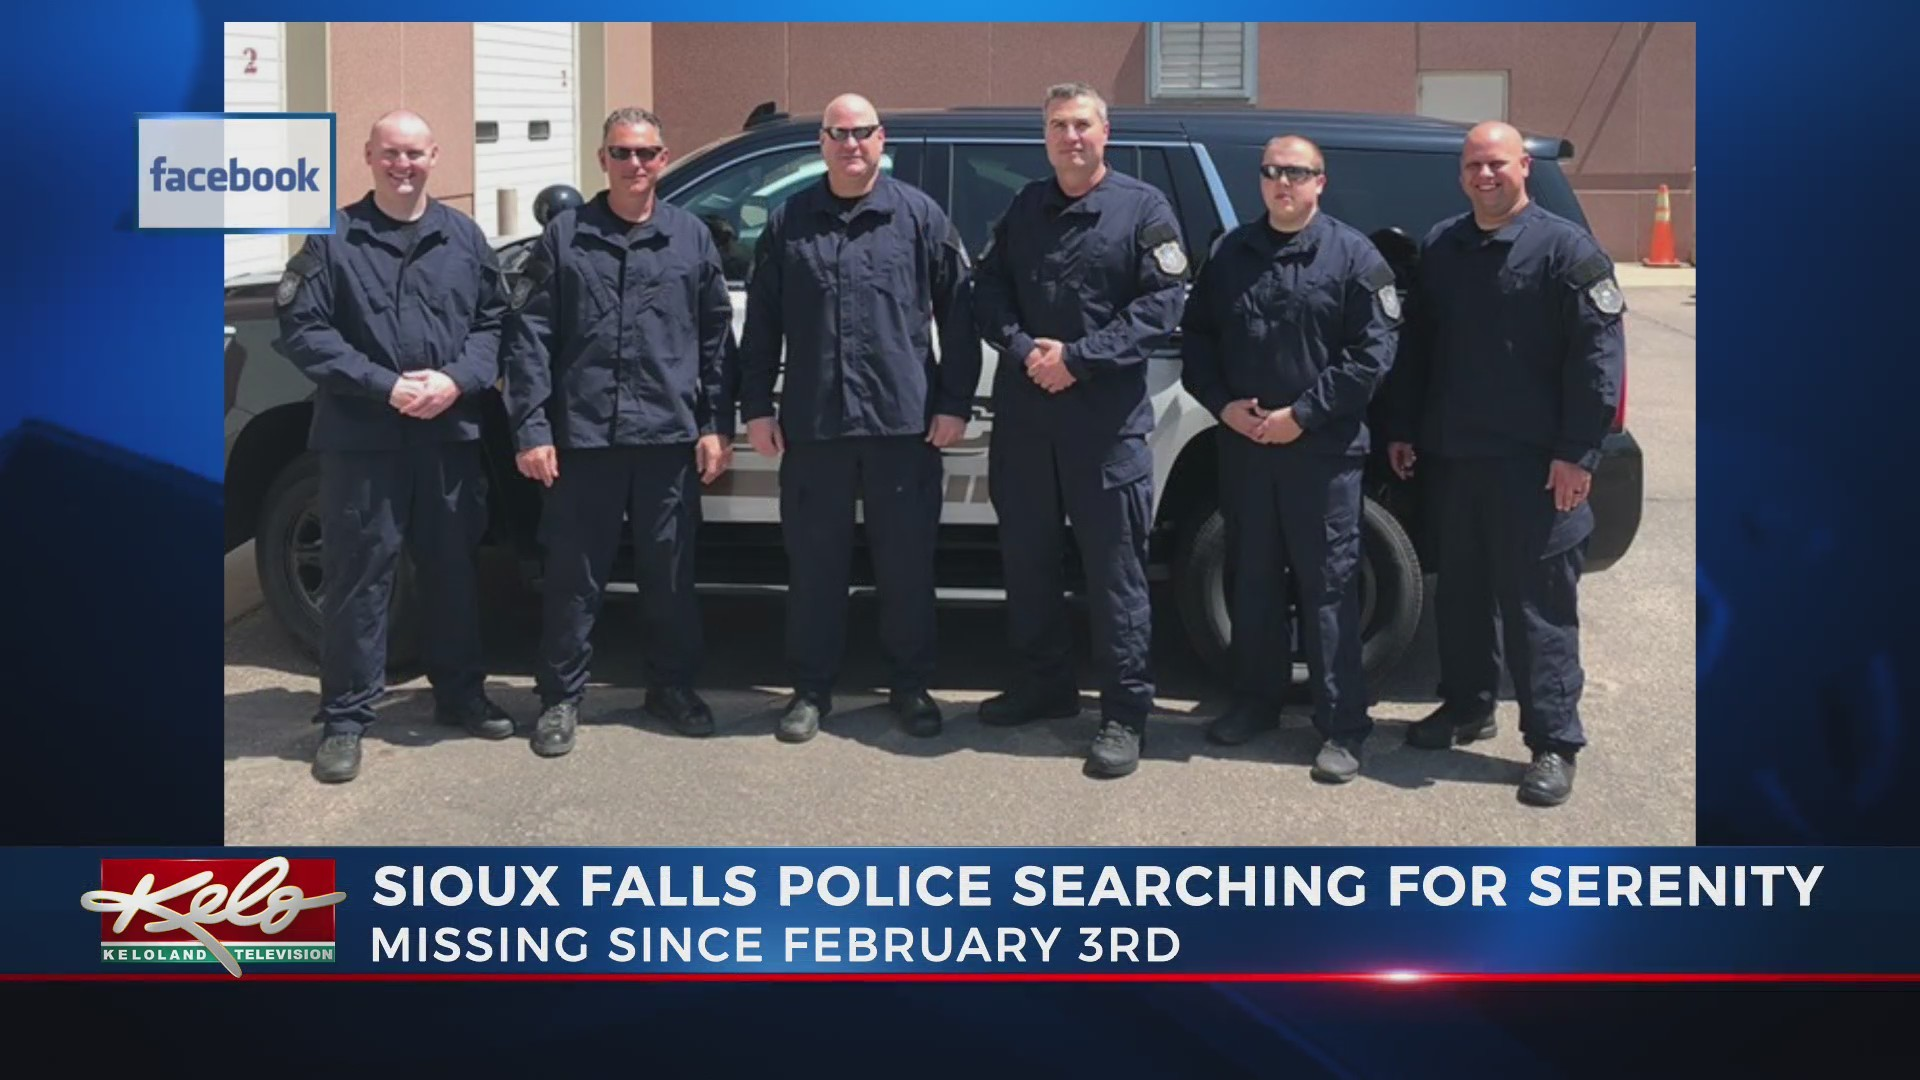 Police officers from across South Dakota respond to call for